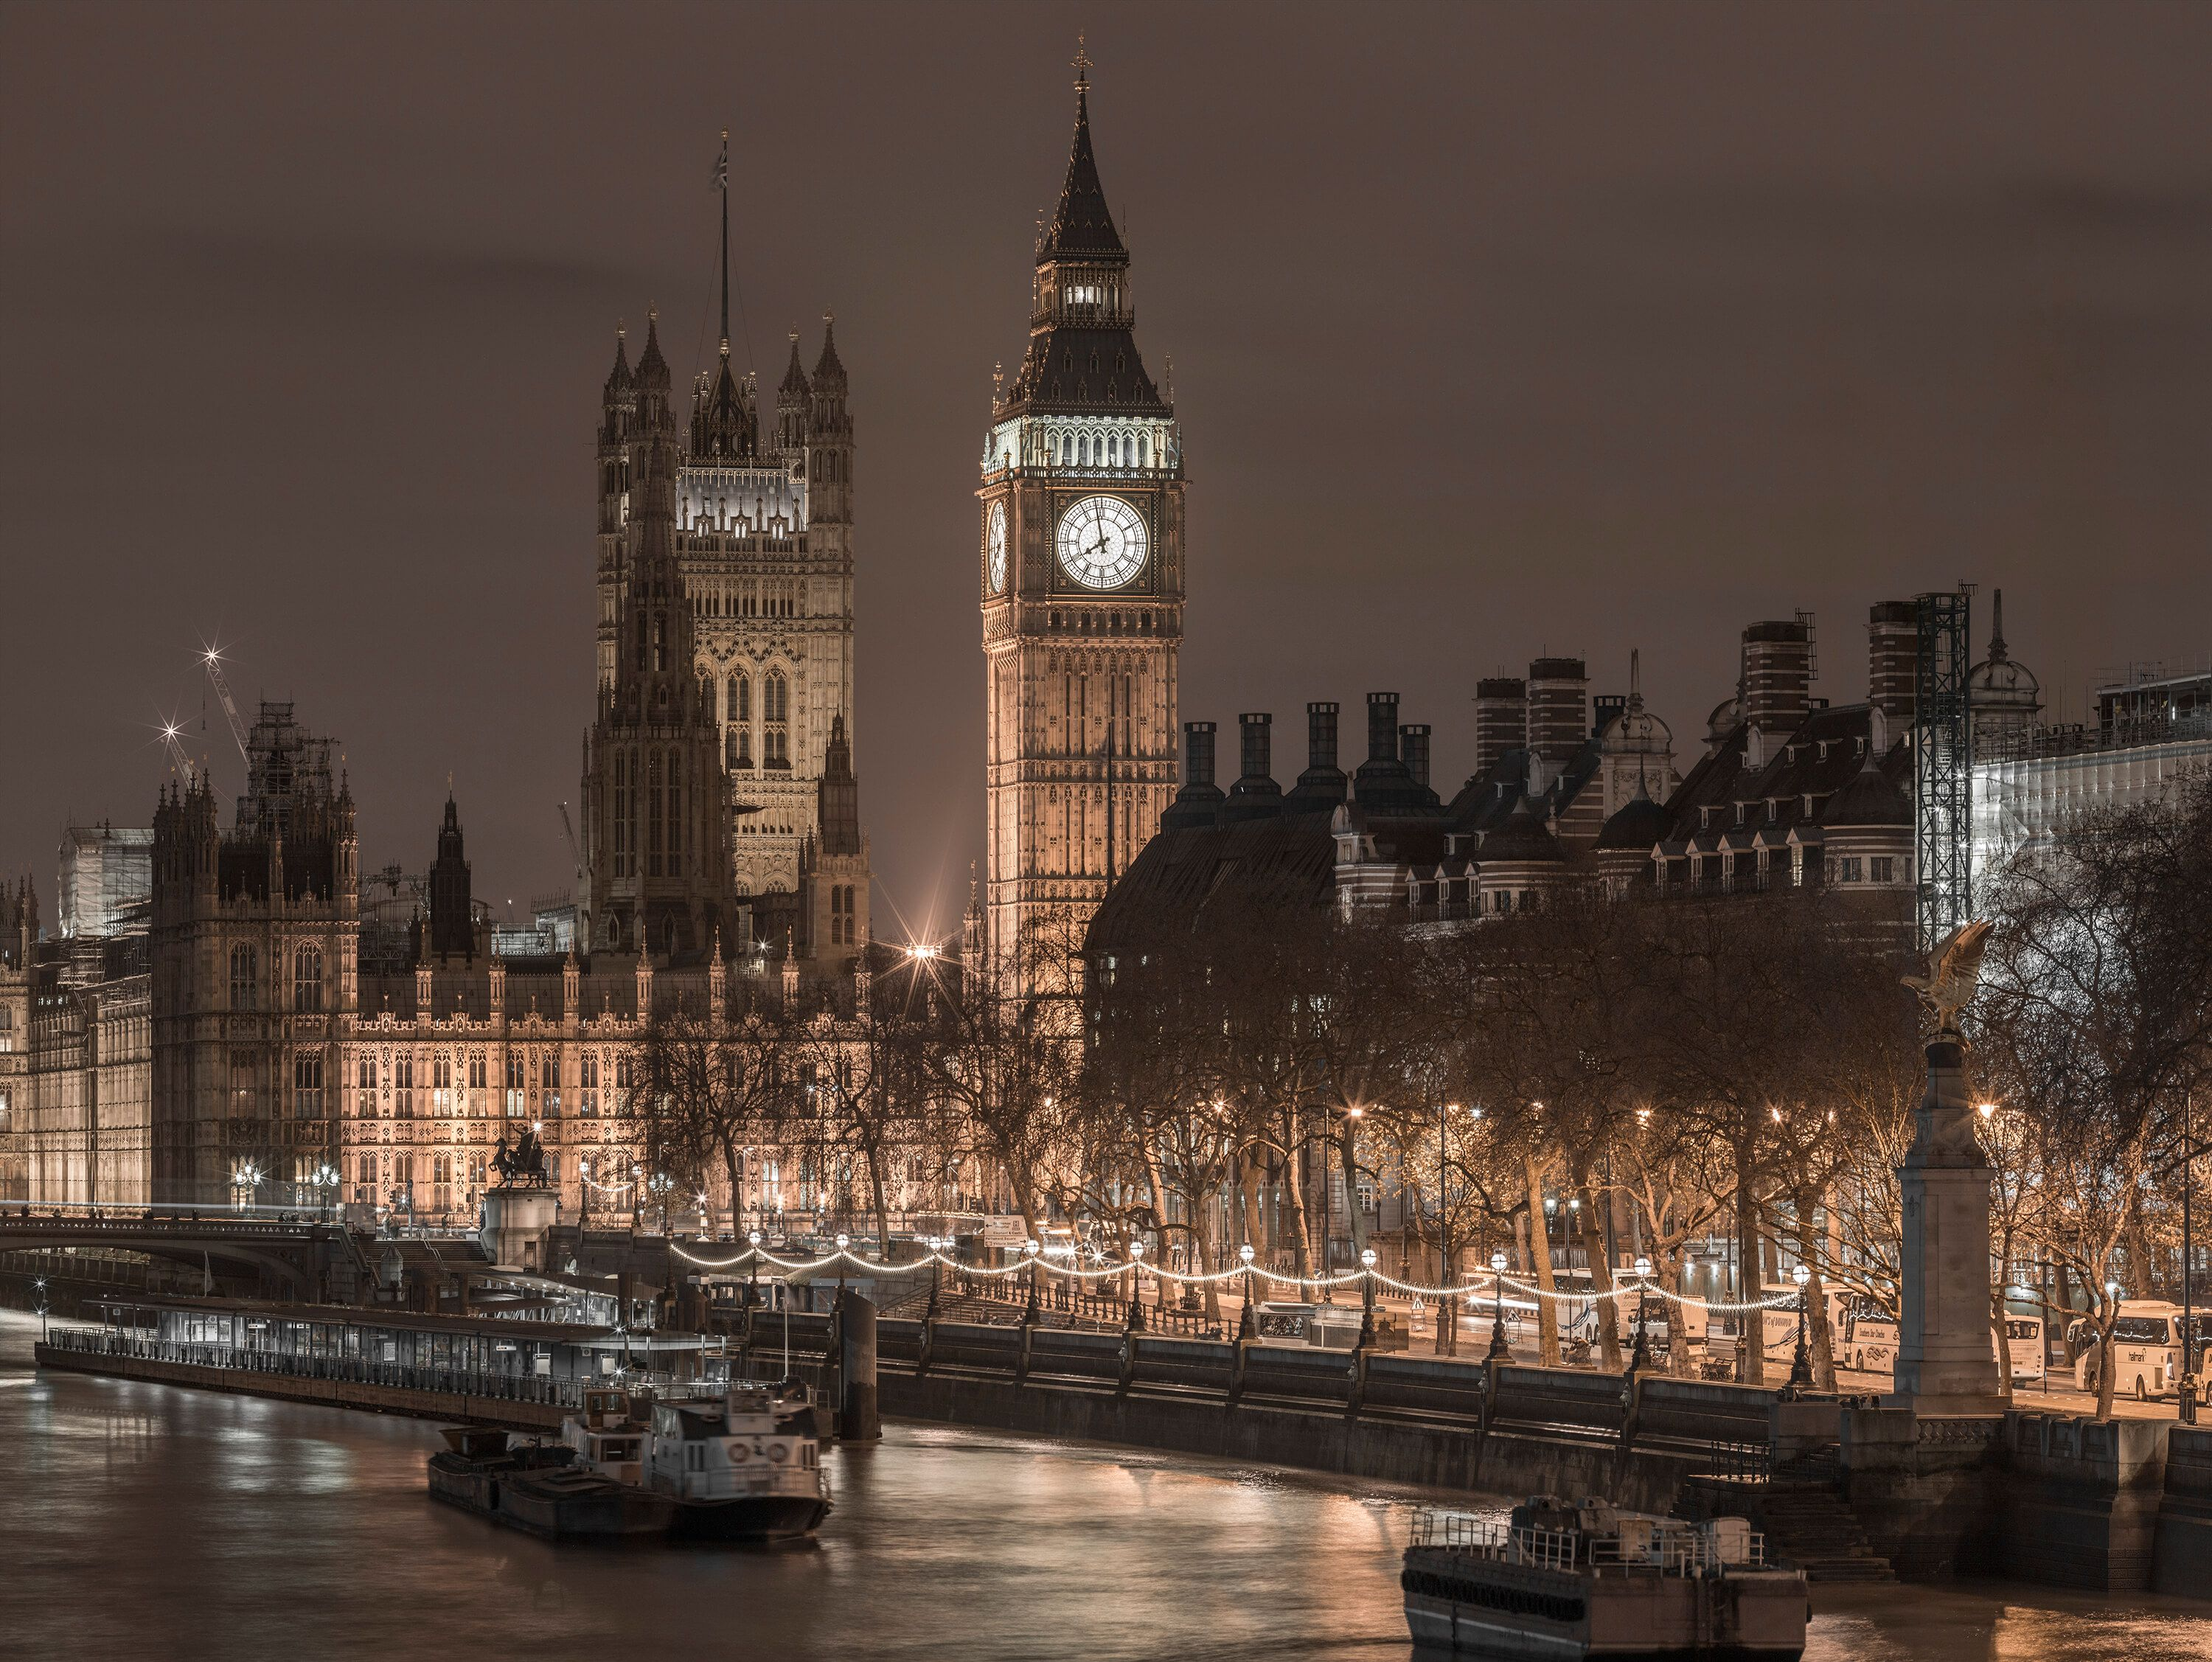 Big Ben and Westminster Abby